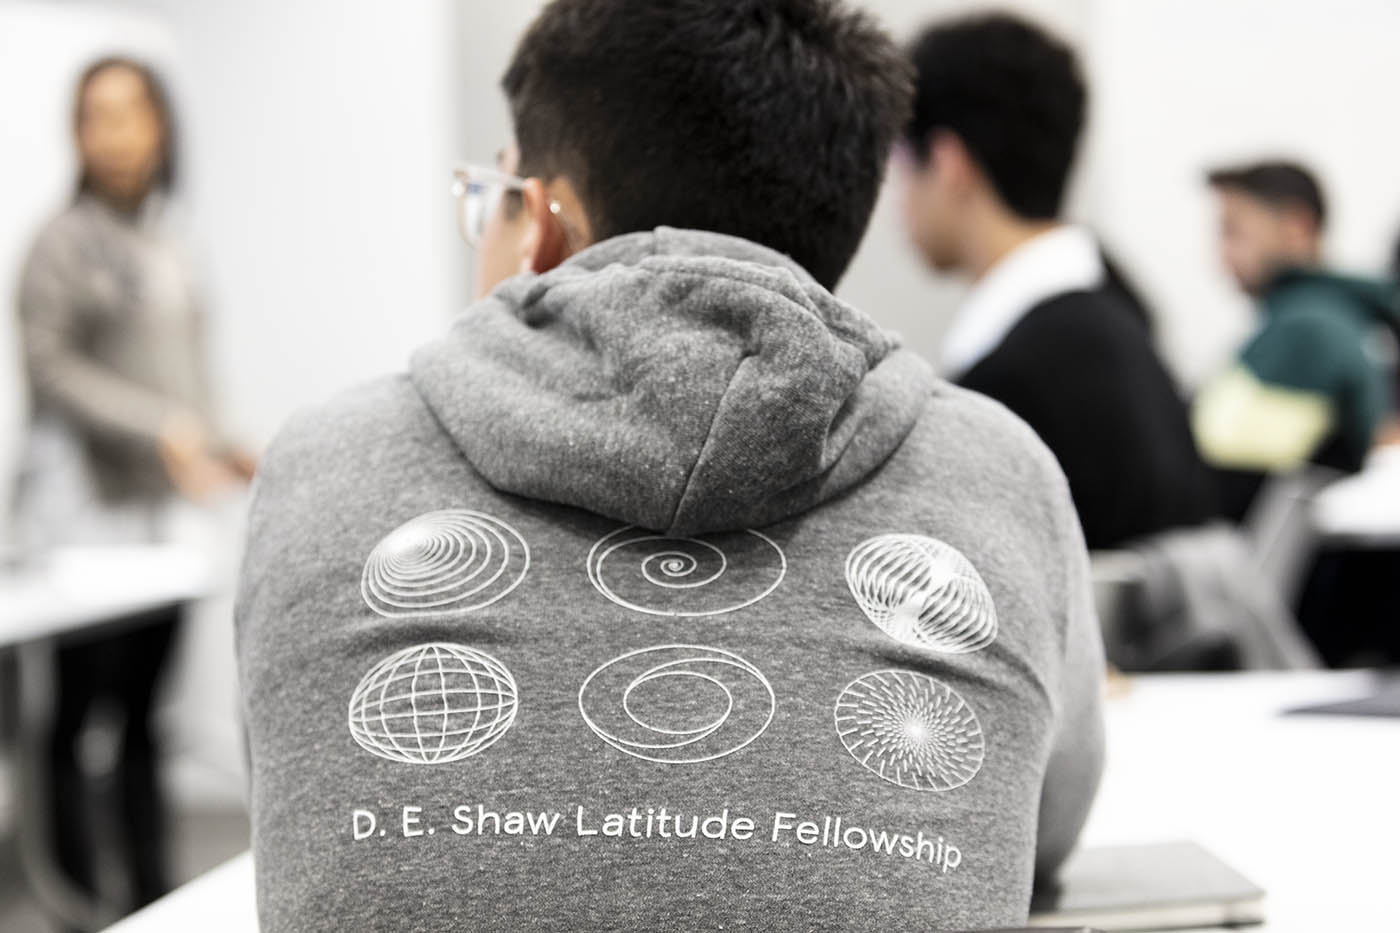 Employee wears a D. E. Shaw Latitude Fellowship sweatshirt.